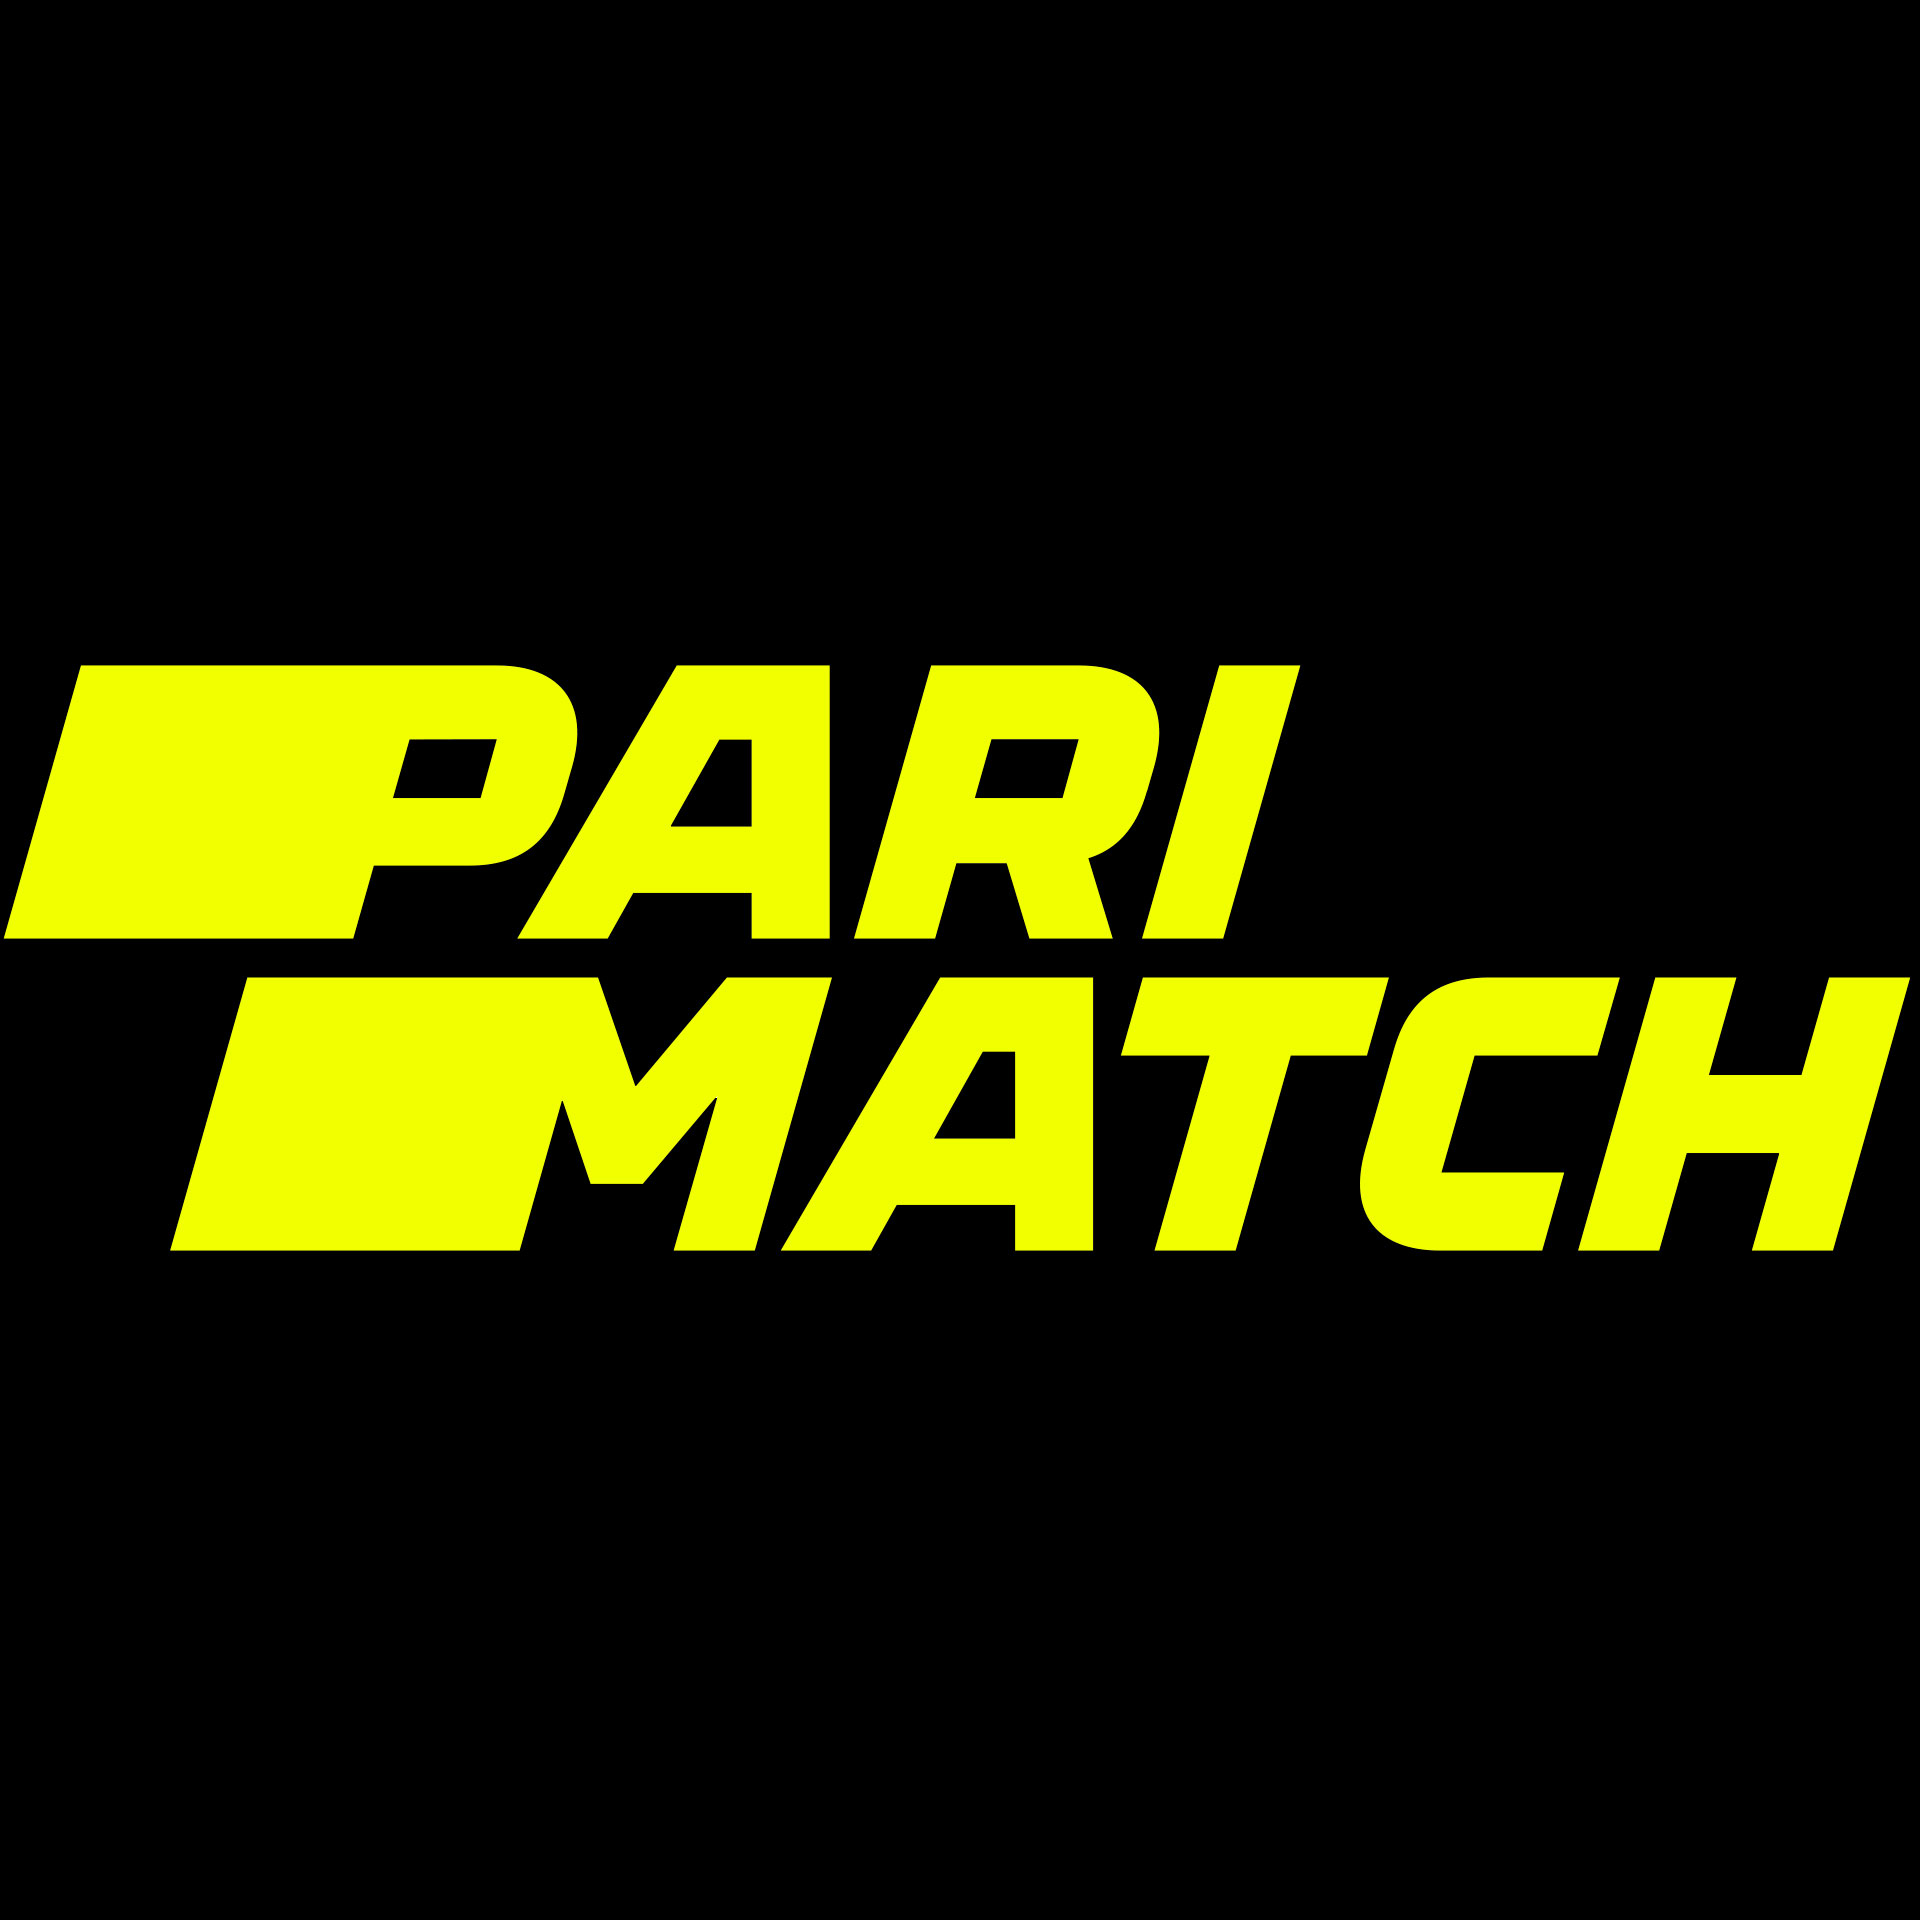 Read pros about Parimatch mobile app for cricket betting